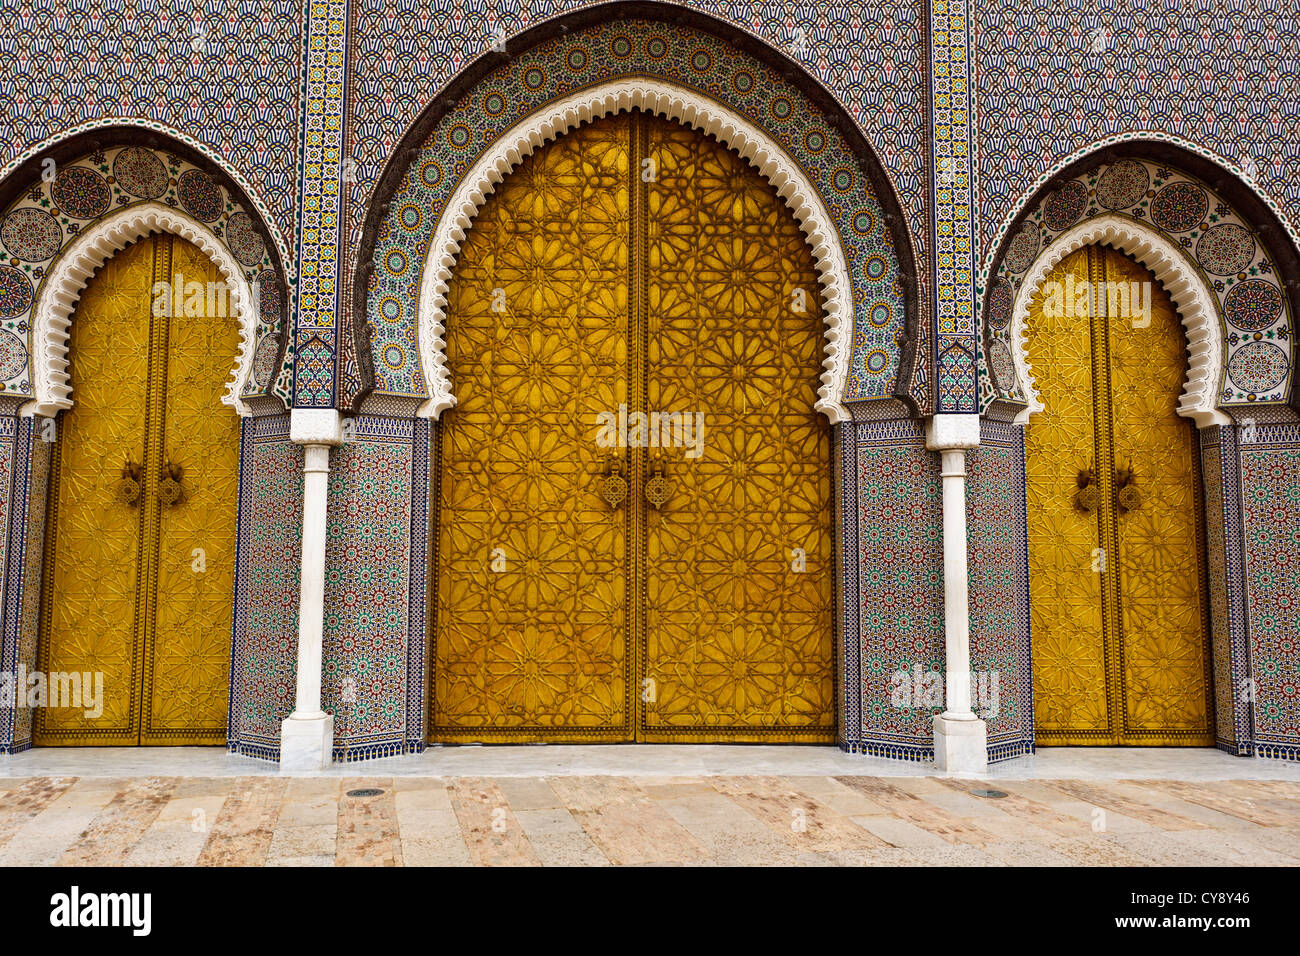 Closeup of 3 main Ornate Brass and Tile Doors to Royal Palace in Fez, Morocco - Stock Image